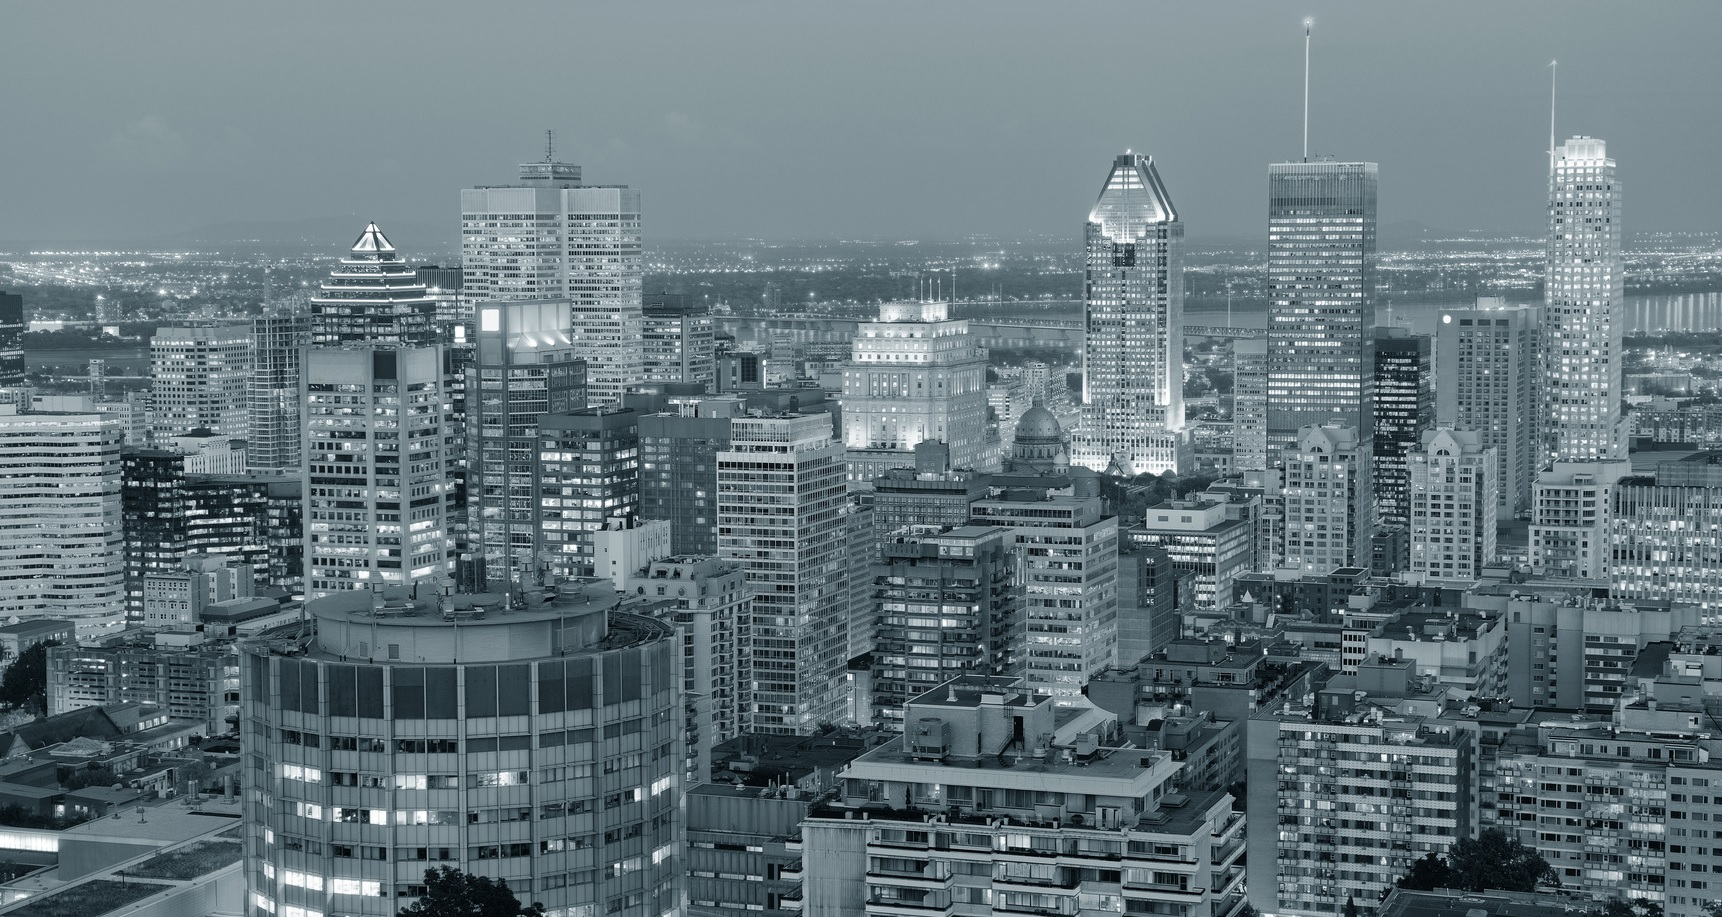 Montreal Quebec Canada It support